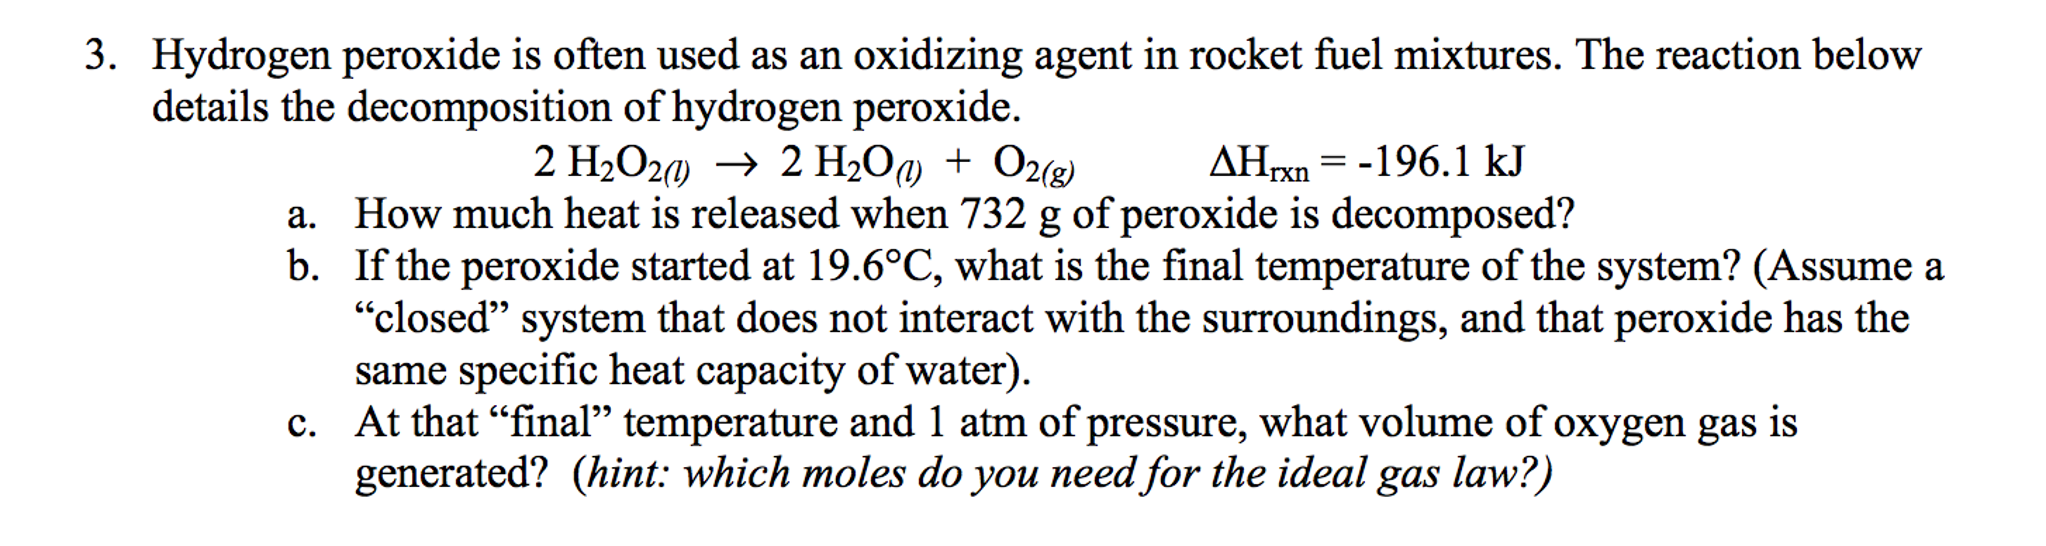 heat of decomposition of hydrogen peroxide